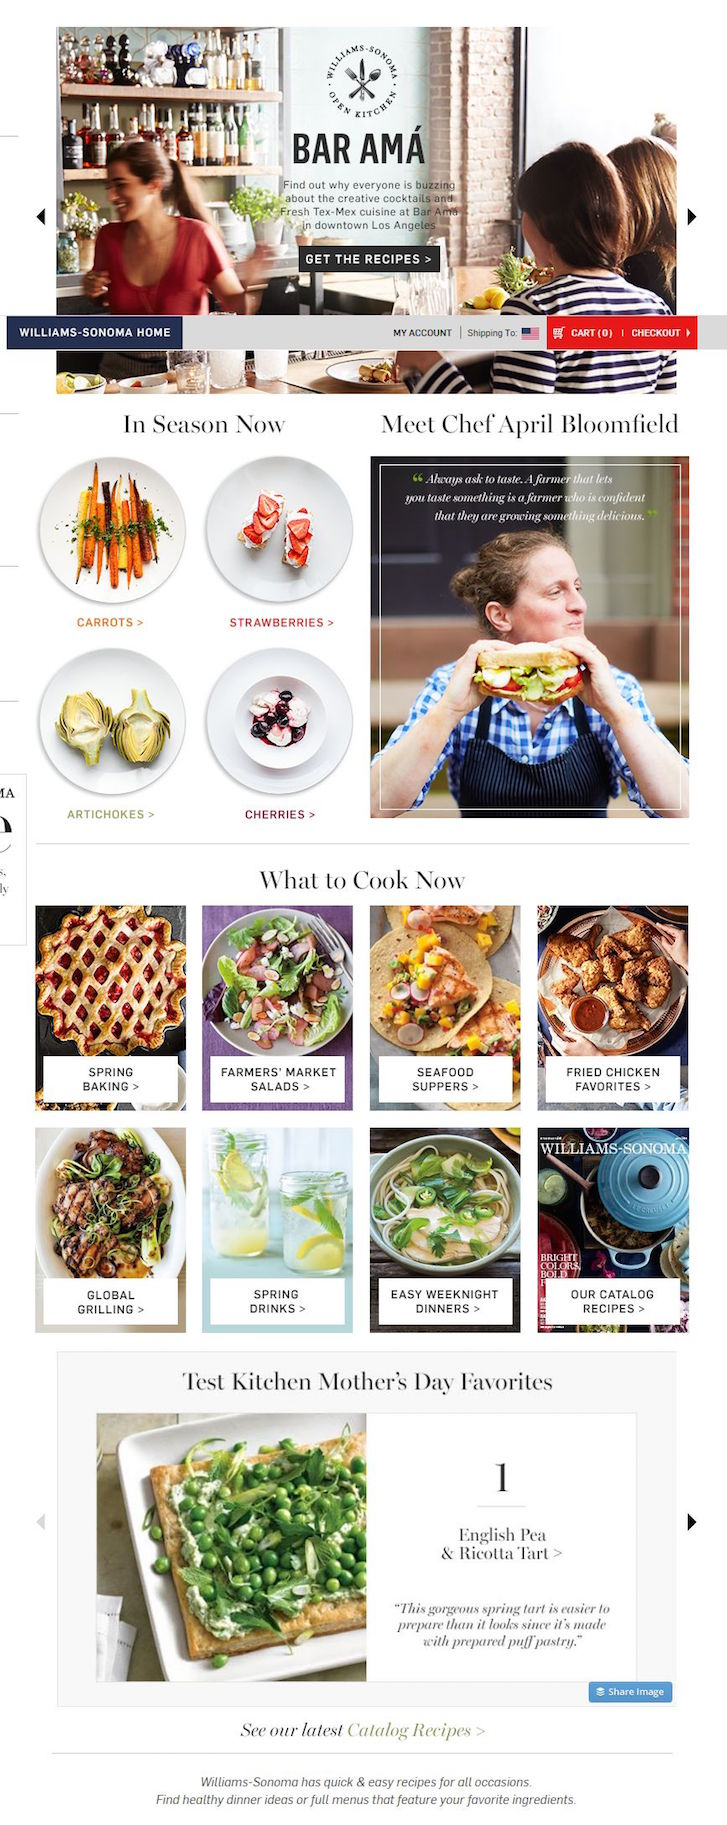 How to Design Product Pages That Convert: Williams Sonoma